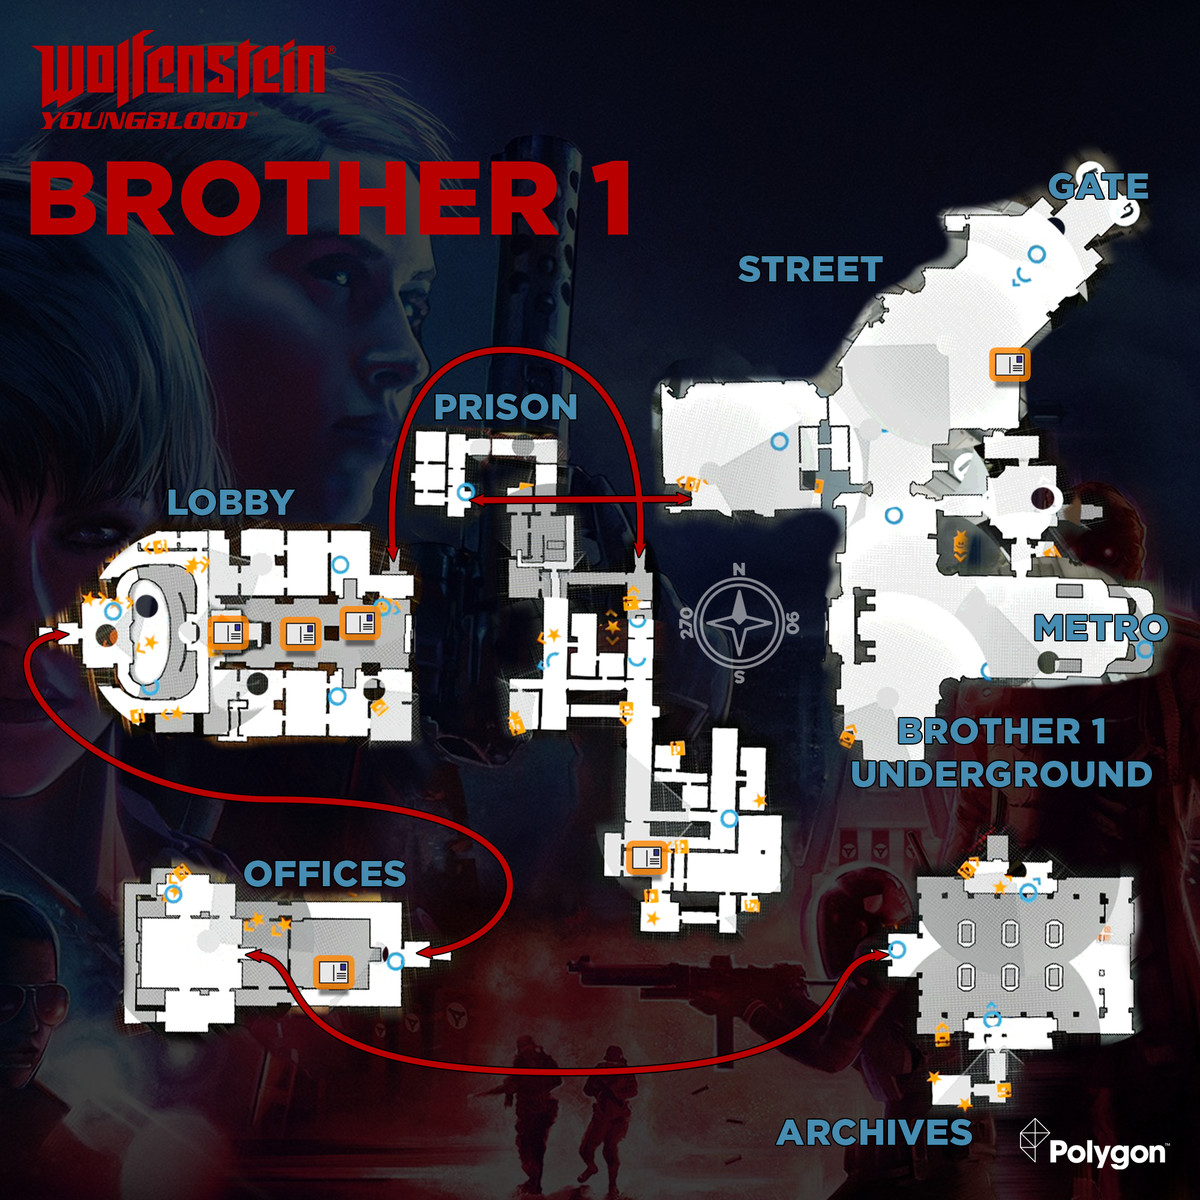 Wolfenstein: Youngblood Brother 1 map with Readable collectible locations